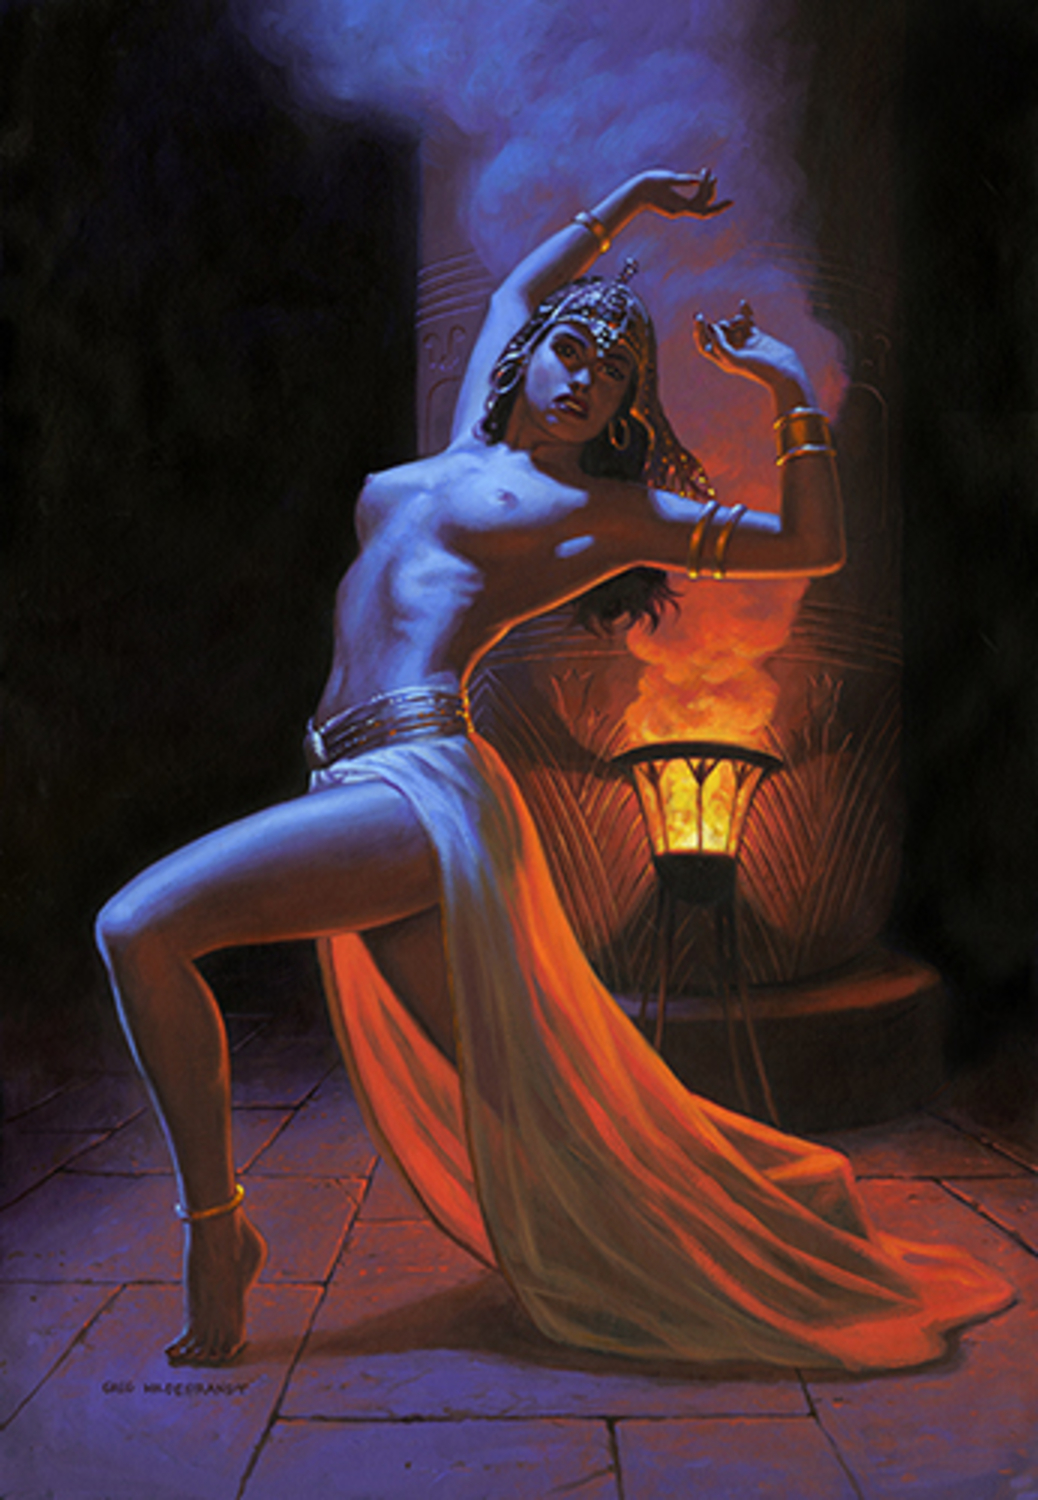 Bettie Page Princess of the Nile Artwork by Greg Hildebrandt